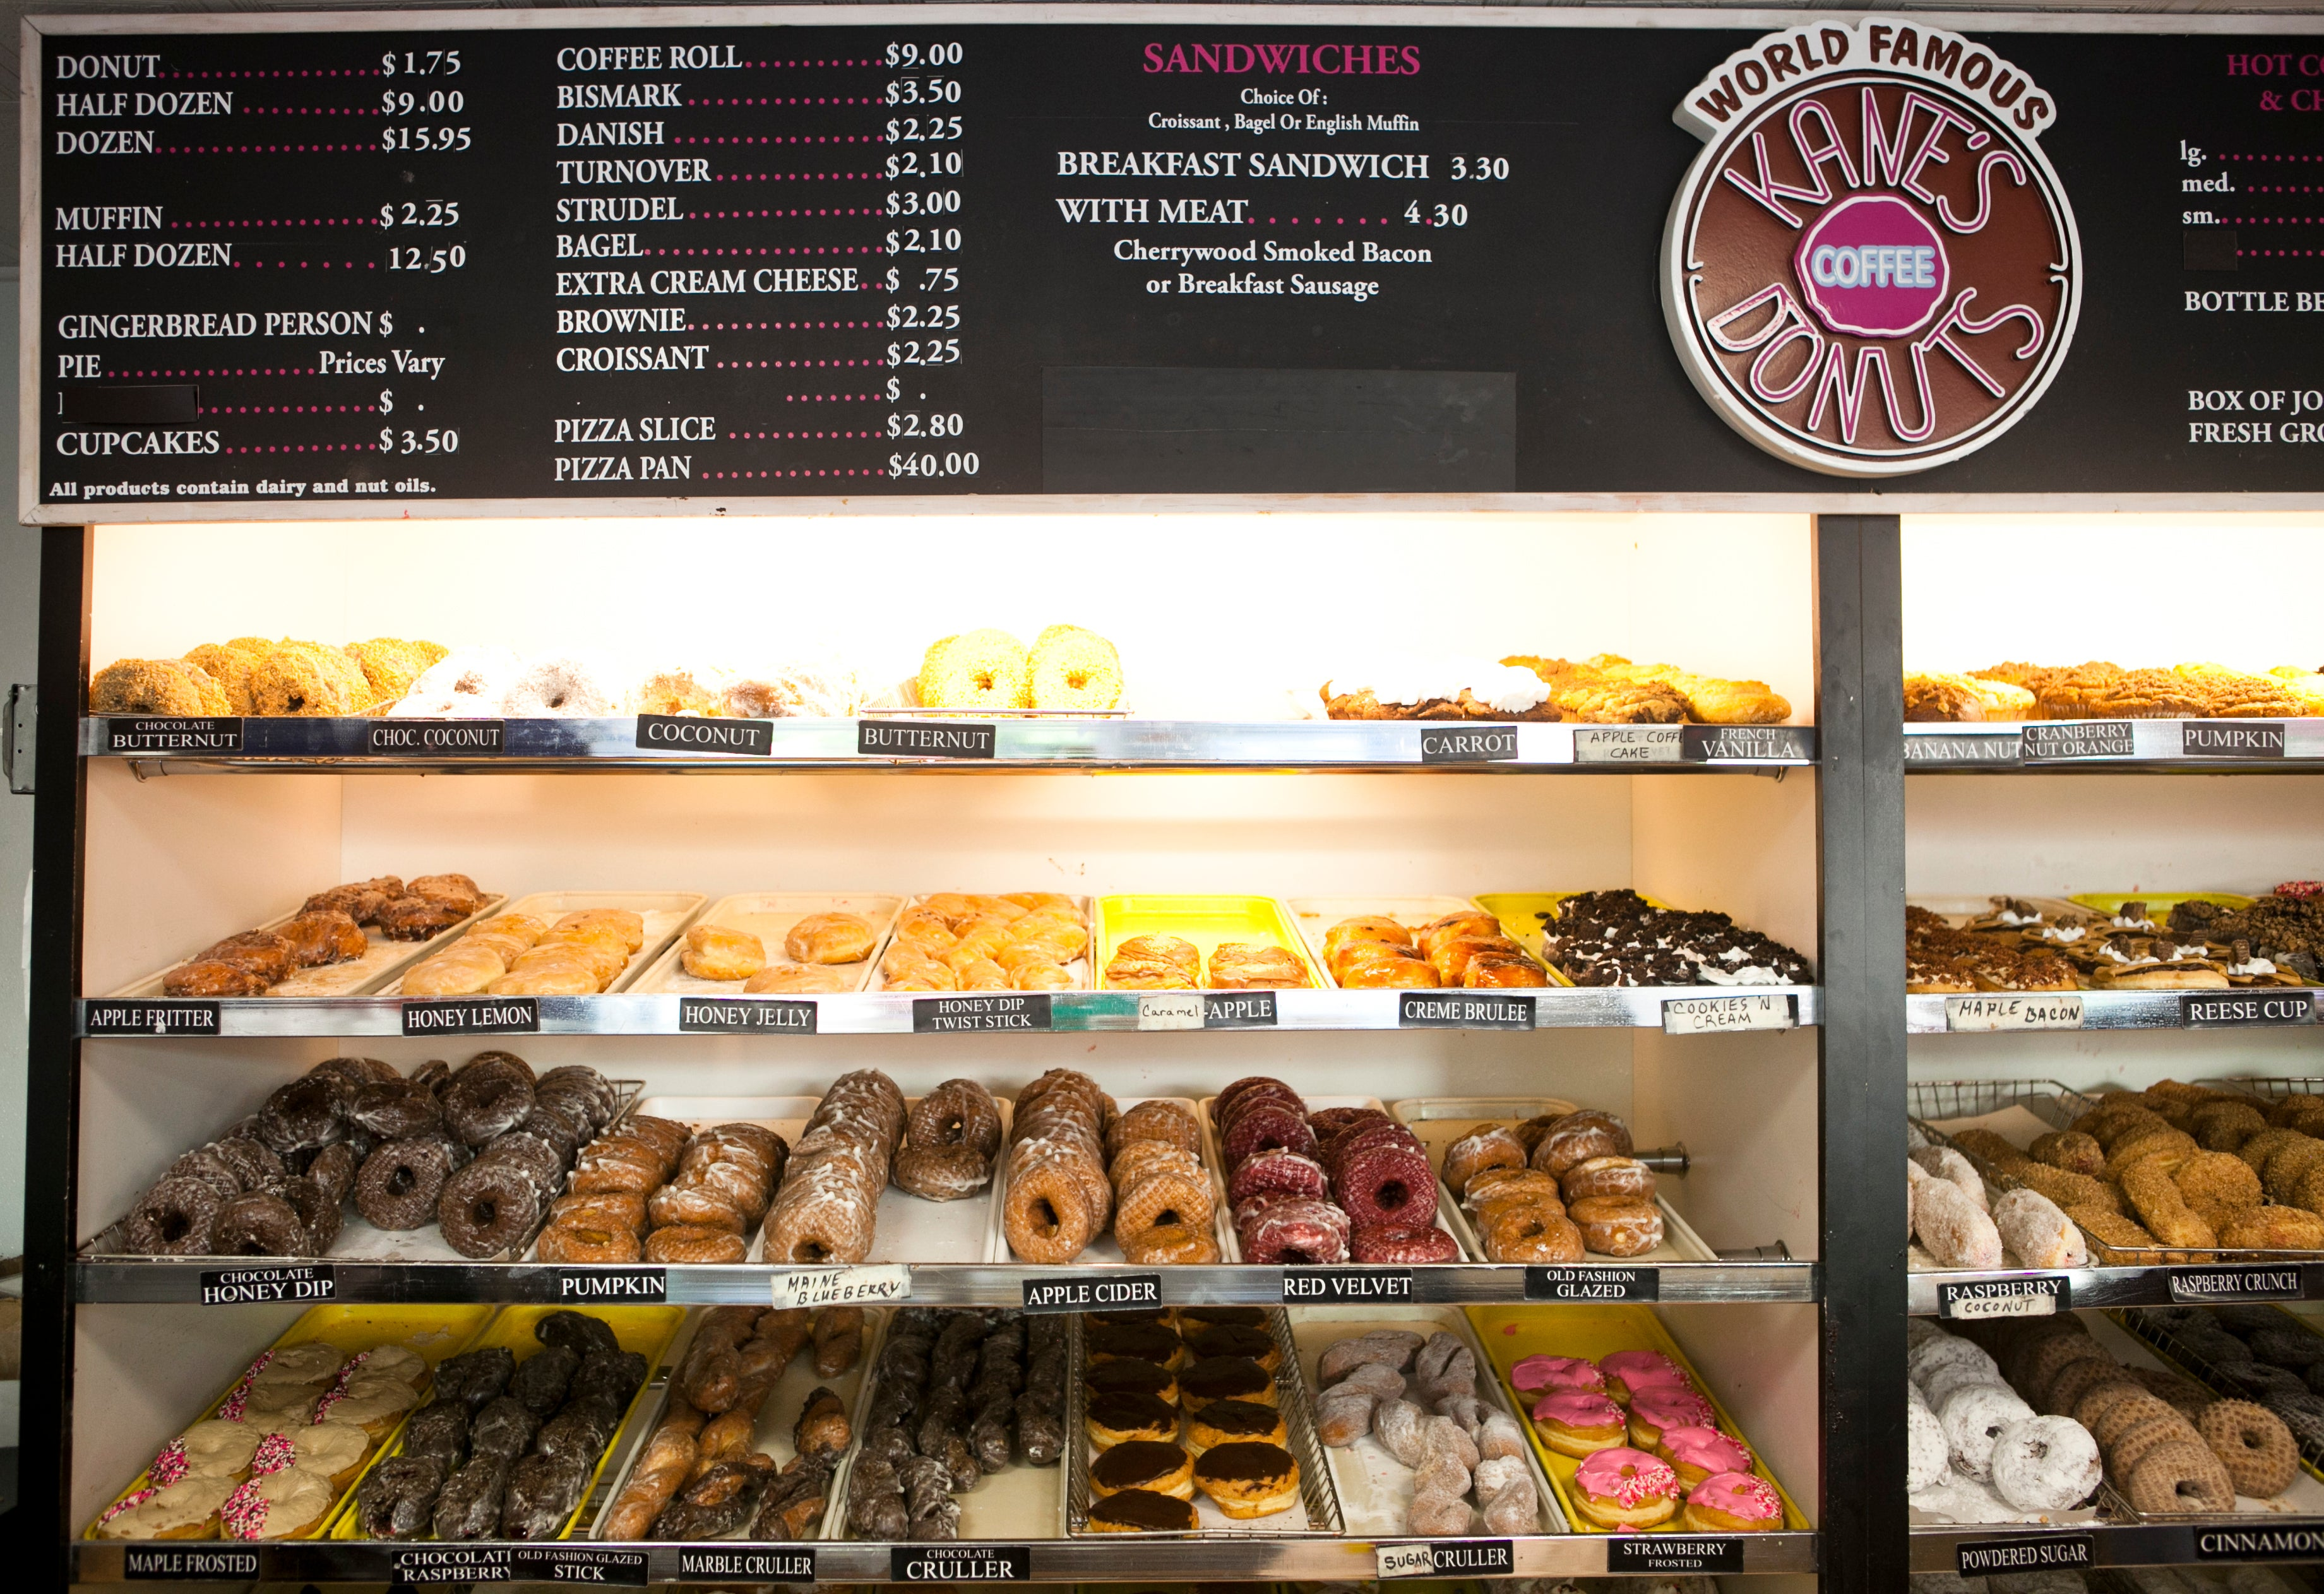 SAUGUS, MA - 09/09/14: Fresh donuts of numerous varieties lines the shelves of Kane's Donuts in Saugus Tuesday morning. Kane's is a 60-year-old institution, and Paul and Maria Delios have been making donuts since they were little kids. They still use their father's recipe and typically make several thousand donuts each day. 03kanes(2)/Business (Juliette Lynch for The Boston Globe)